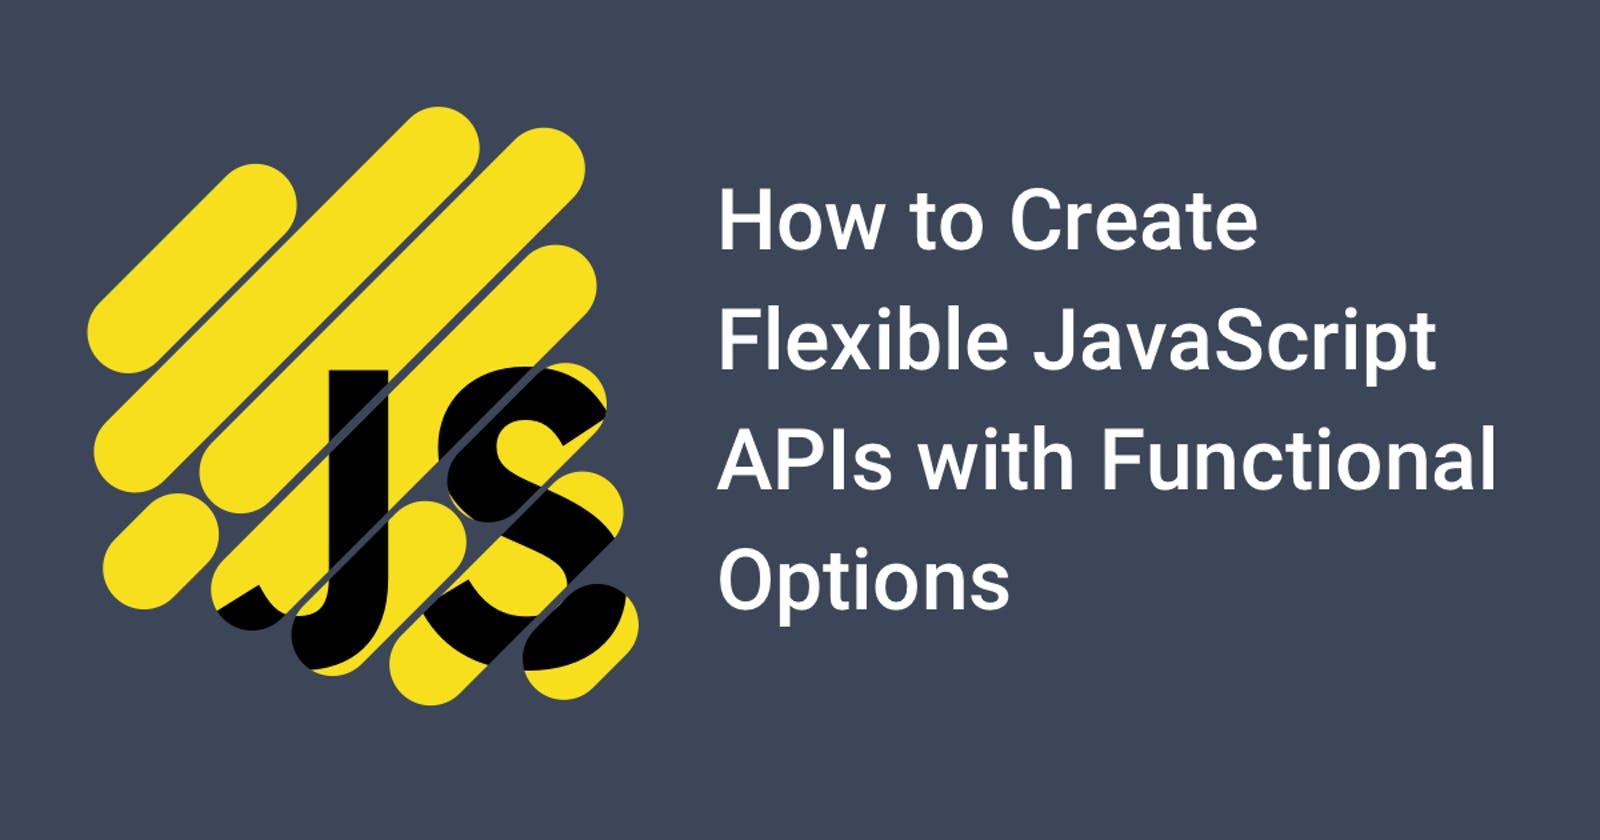 How to Create Flexible JavaScript APIs with Functional Options